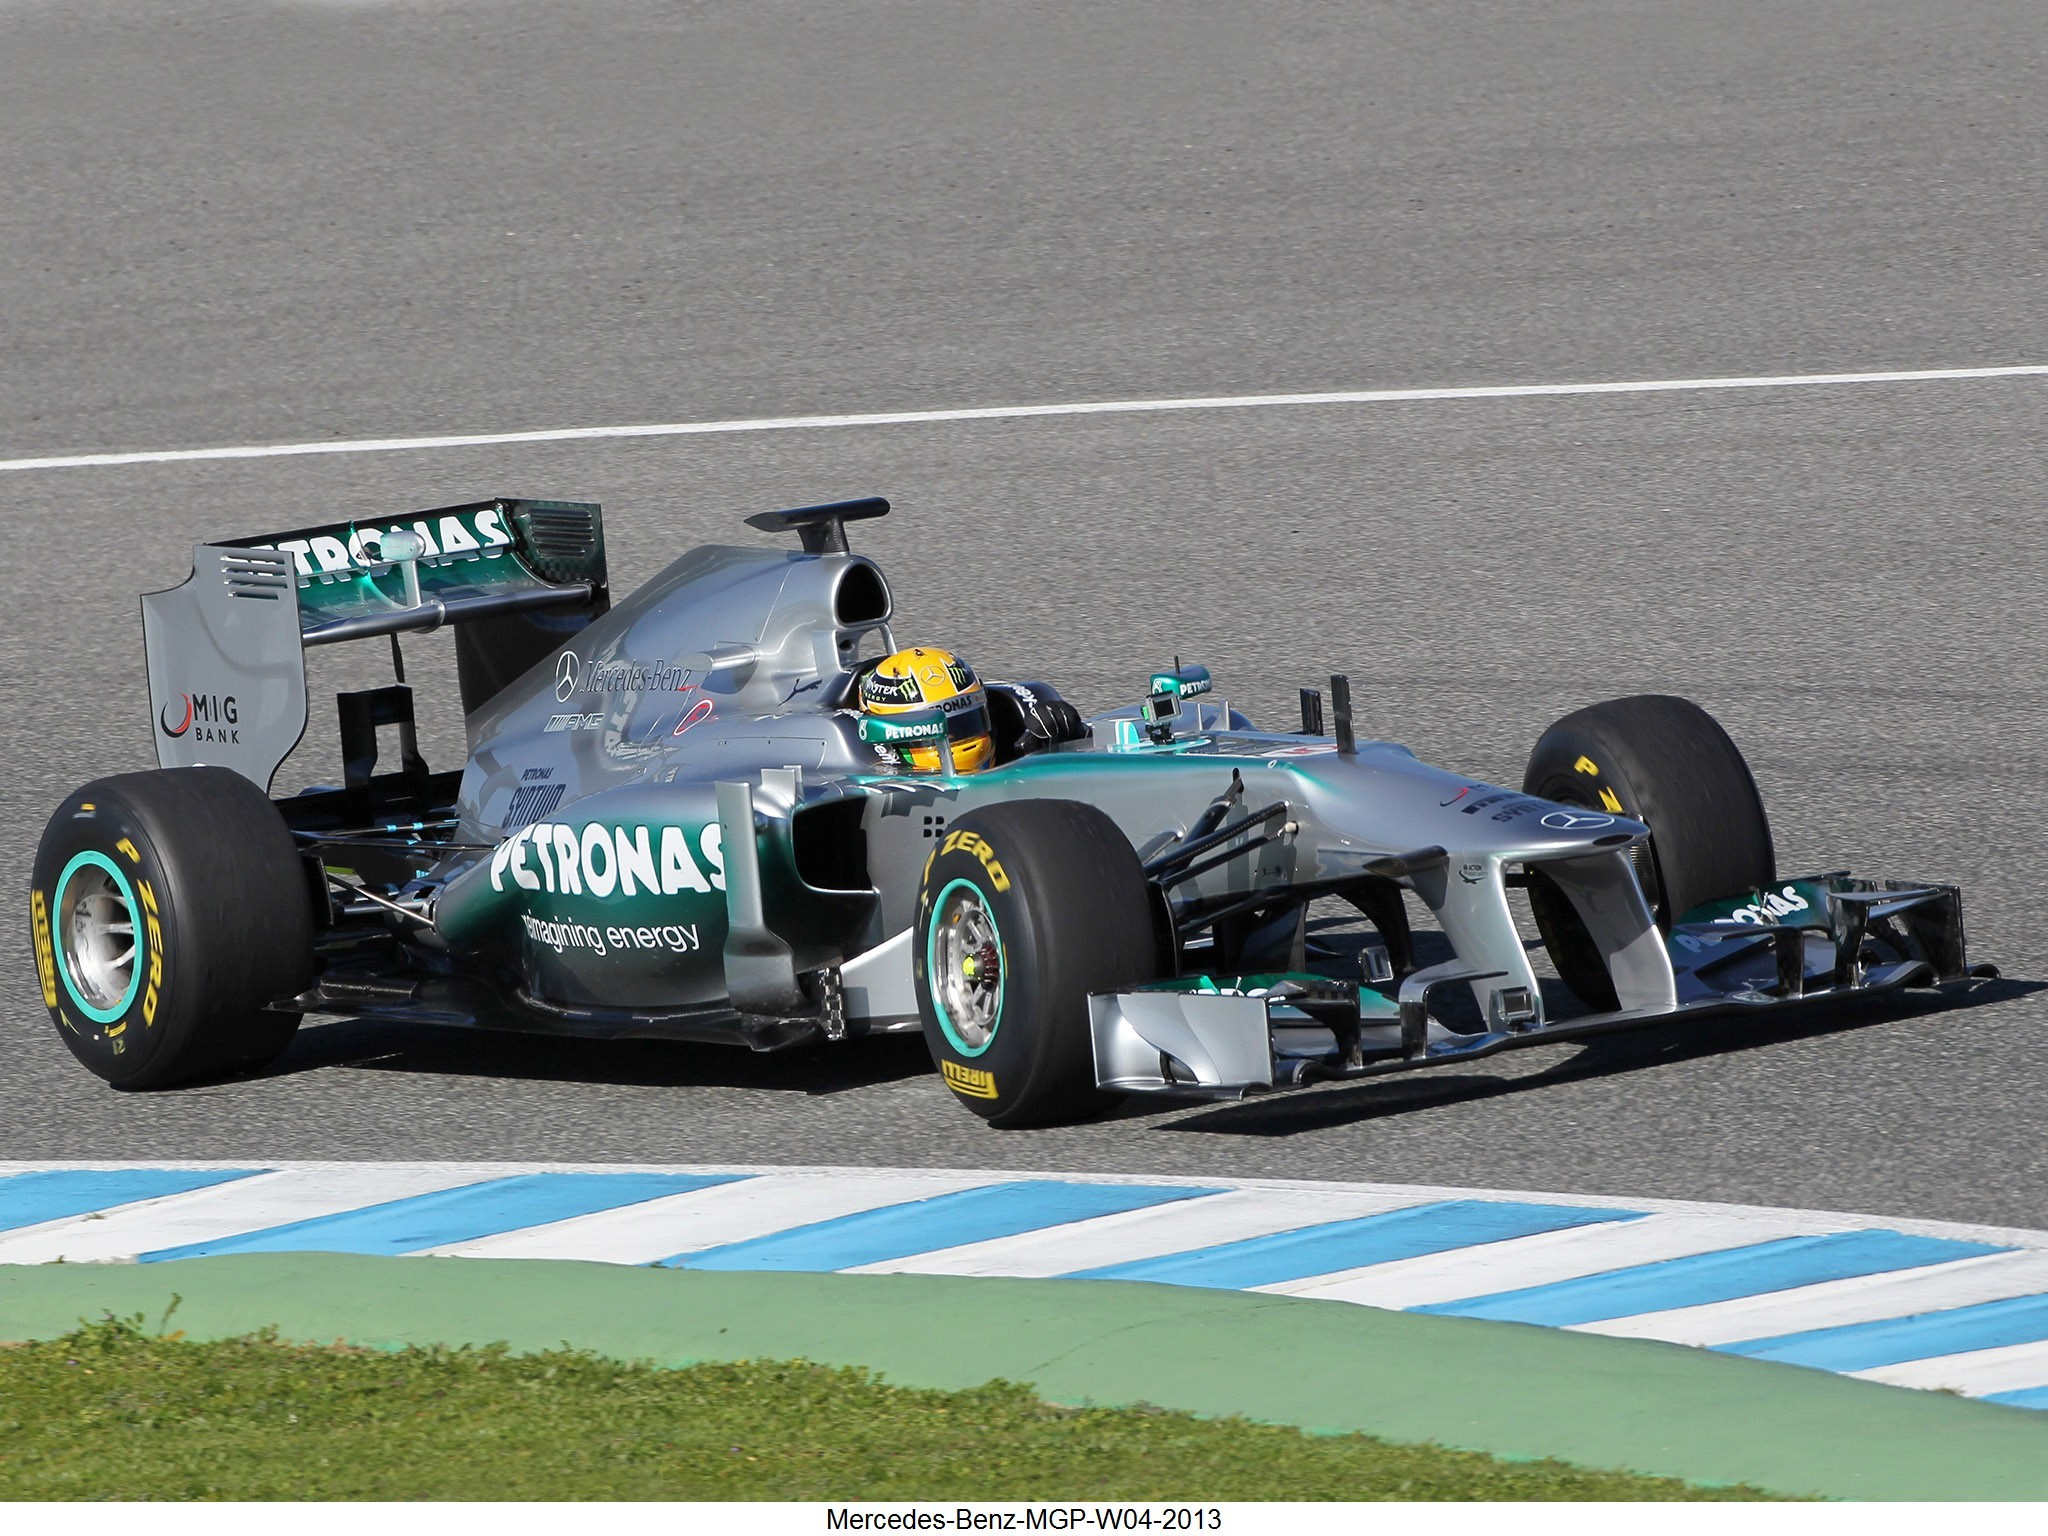 Mercedes-Benz MGP W04 2013